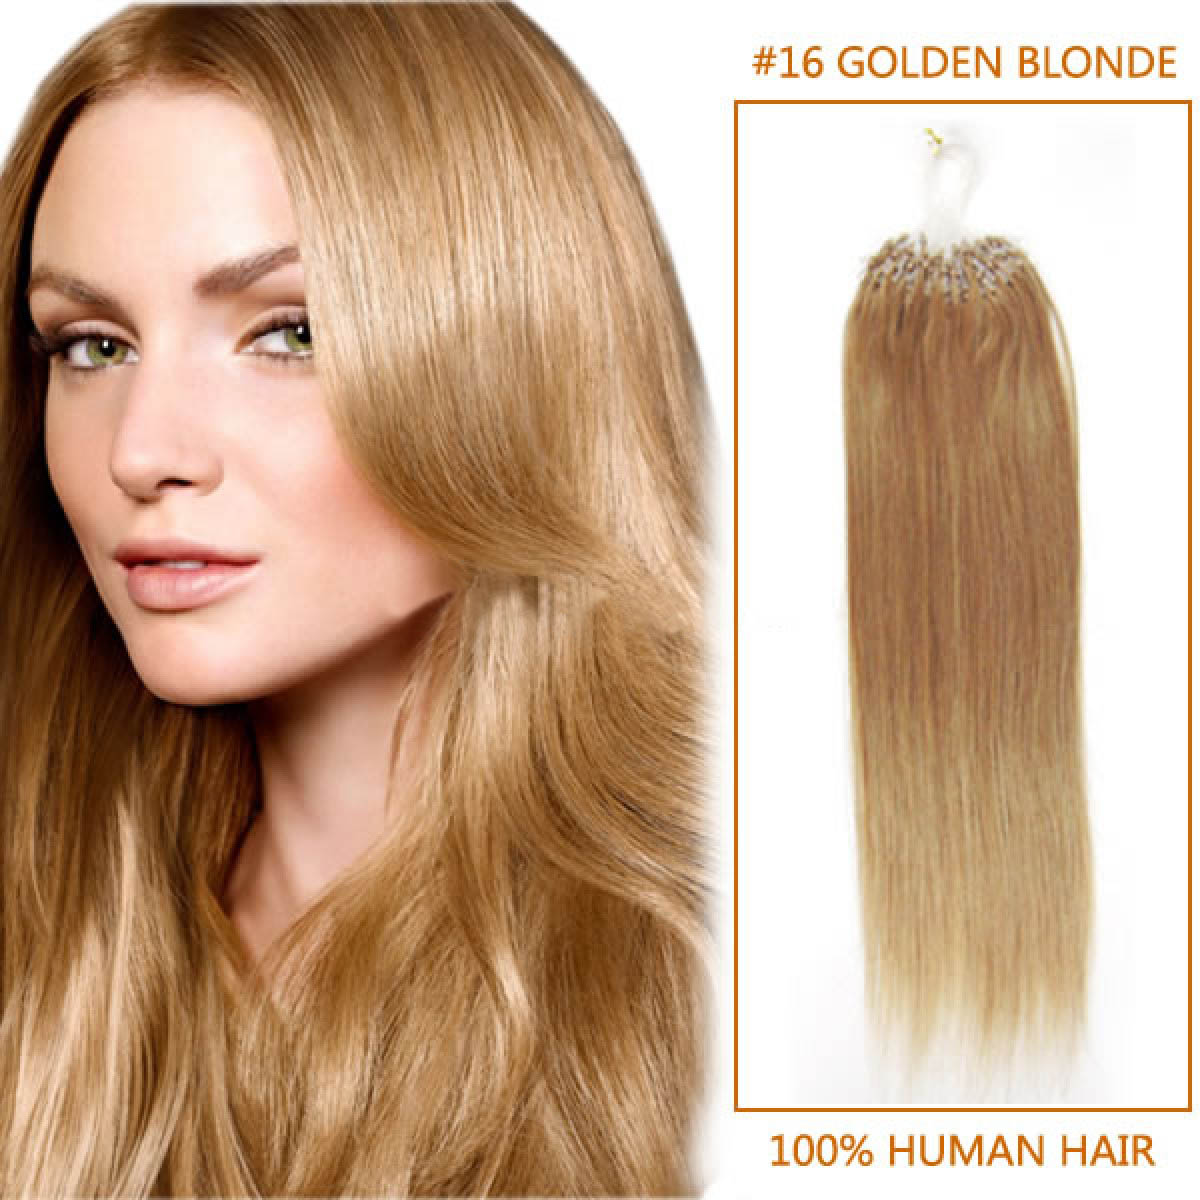 Golden hair extensions images hair extension hair highlights ideas inch 16 golden blonde micro loop human hair extensions 100s 100g 16 inch 16 golden blonde pmusecretfo Choice Image